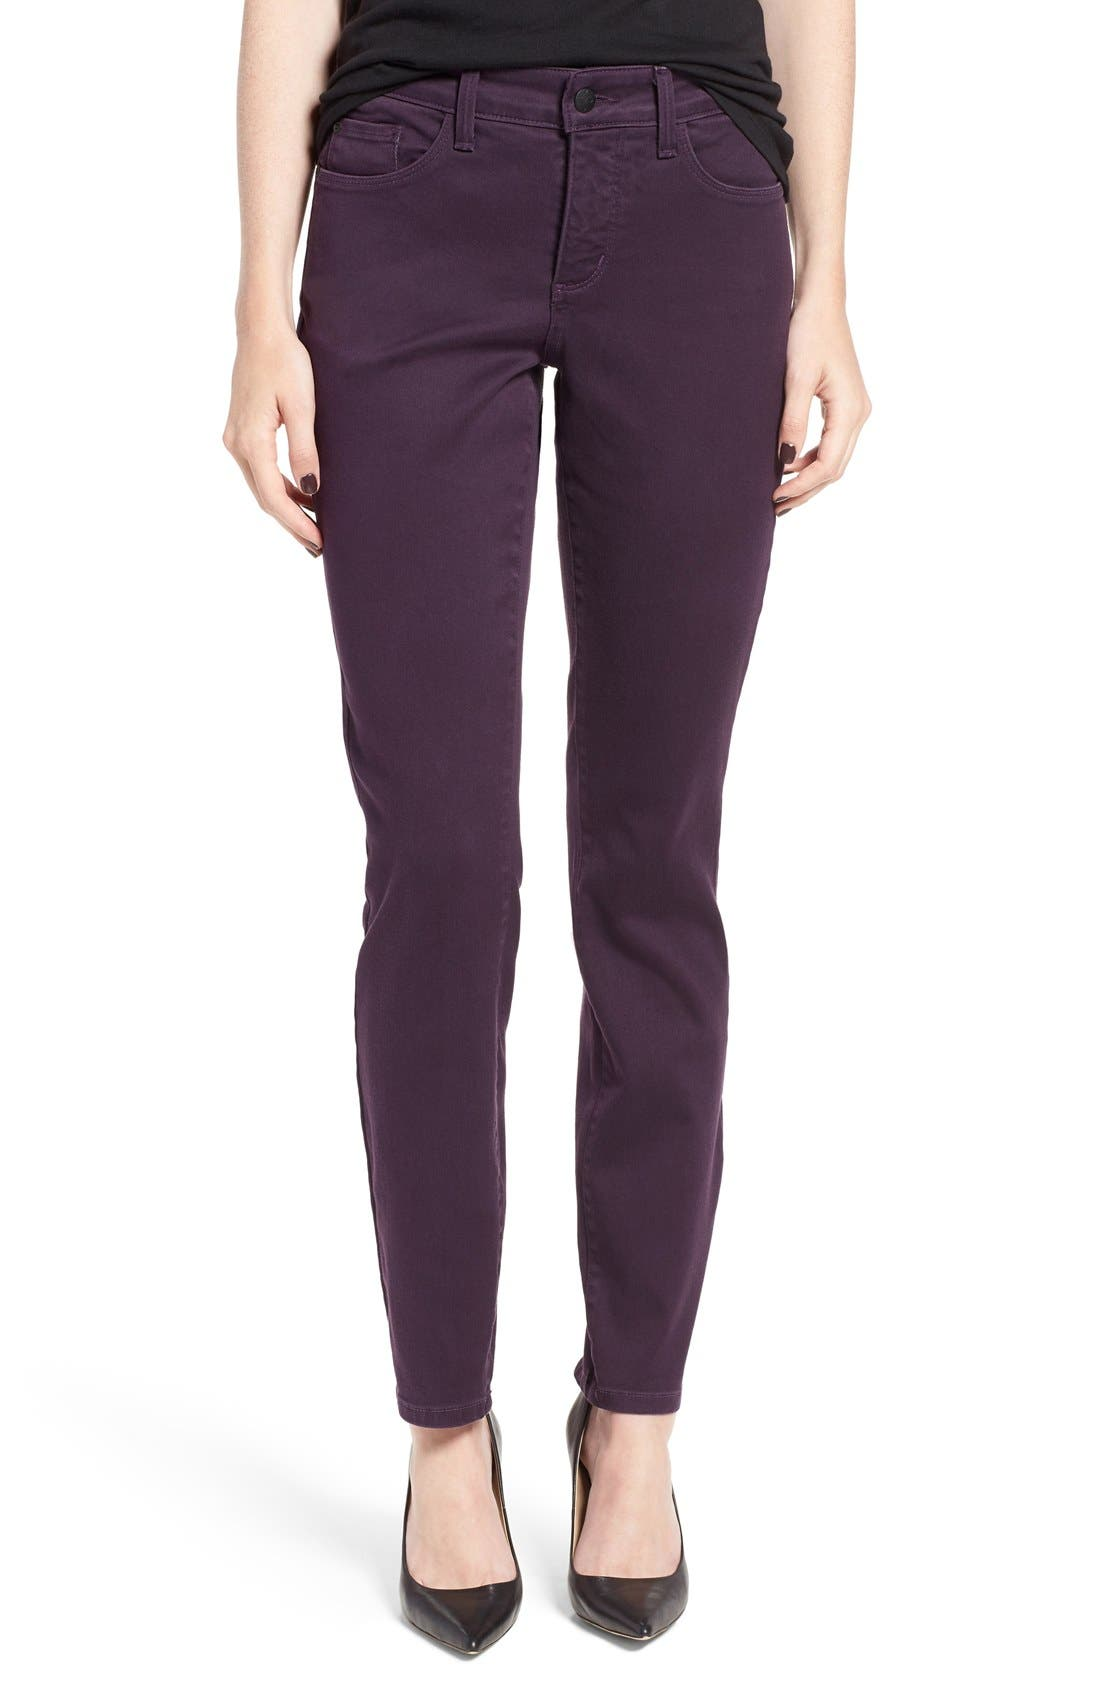 Alina Colored Stretch Skinny Jeans,                         Main,                         color, Deep Violette